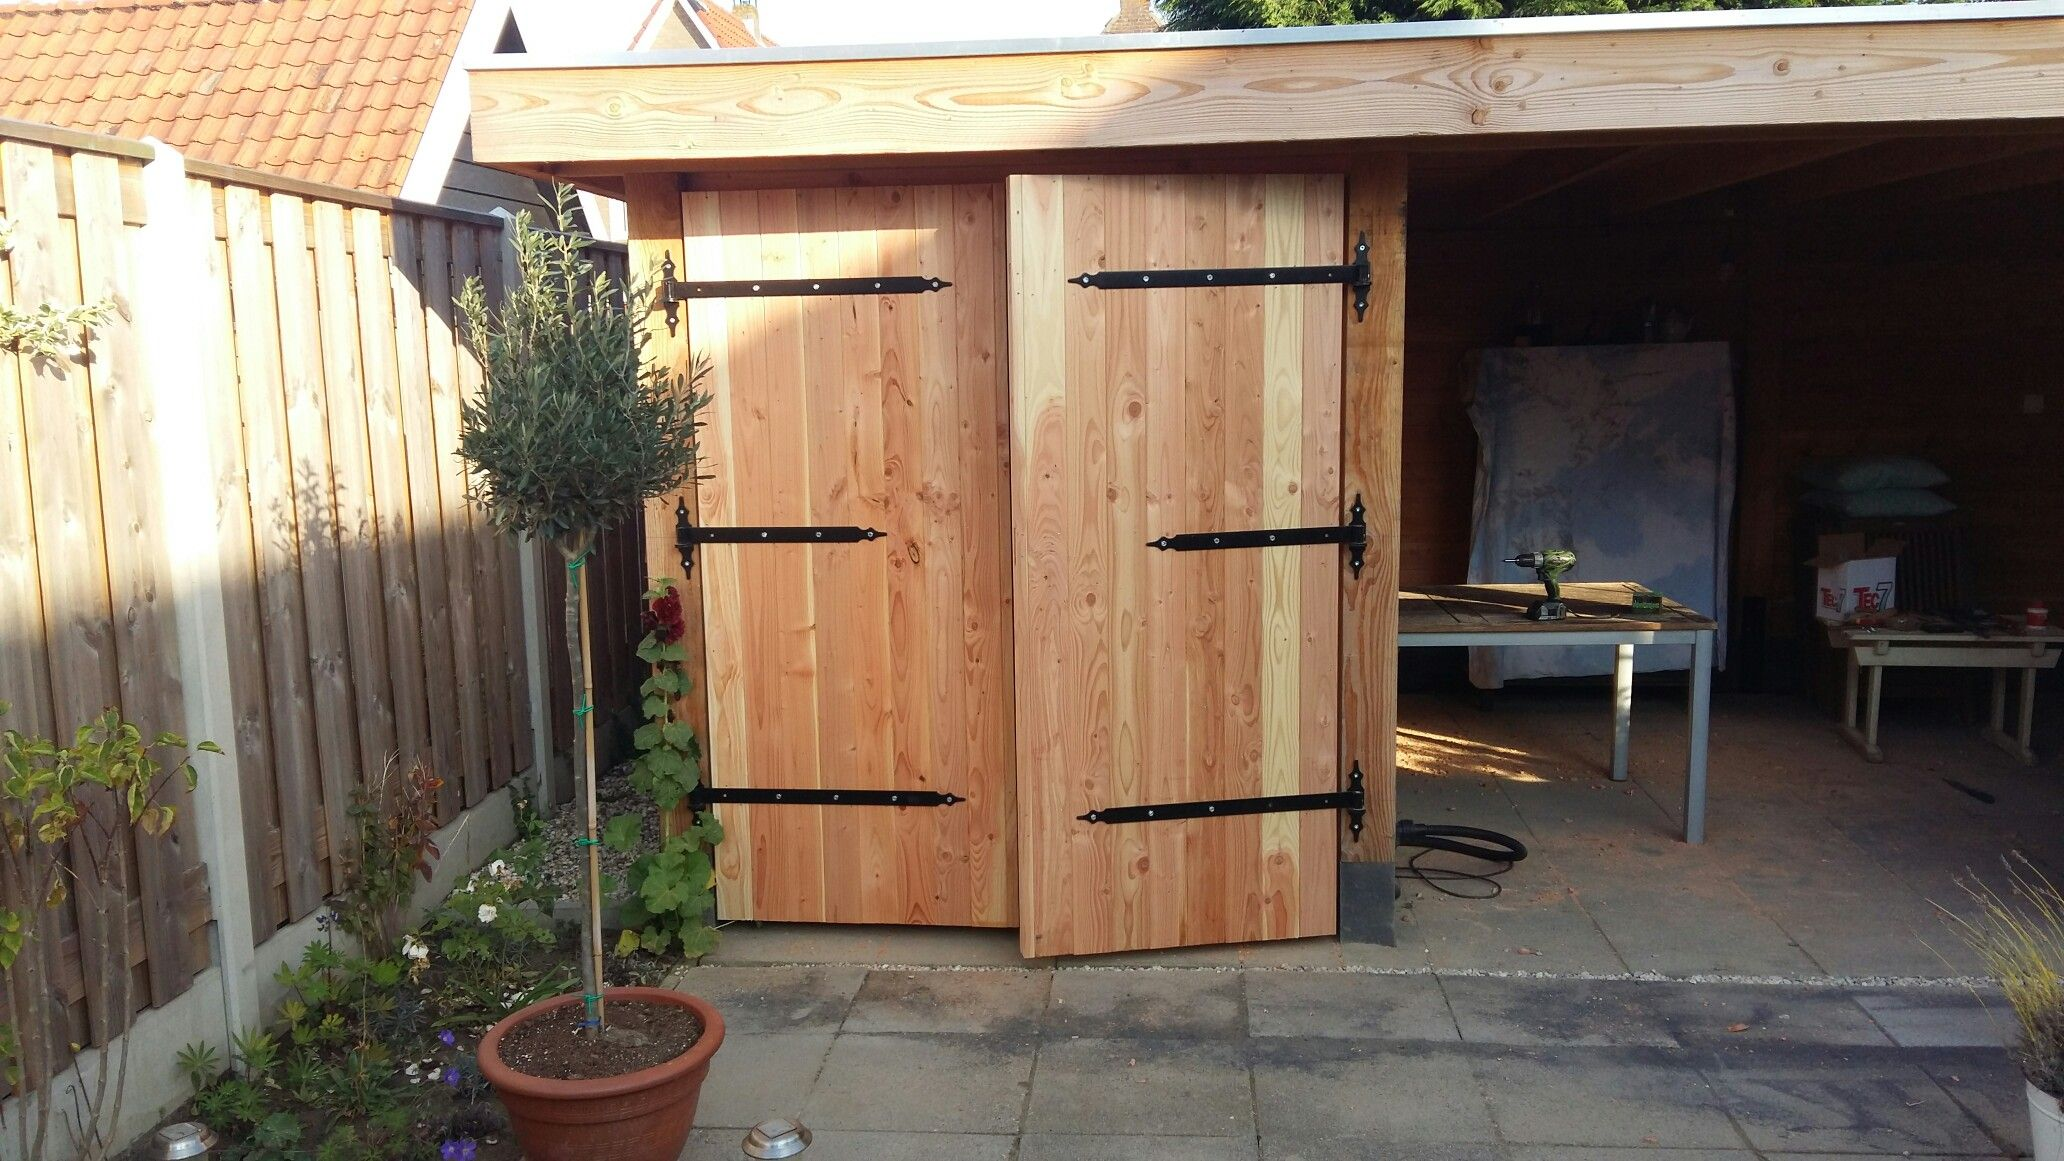 Poolheizung Diy Pin Van Chopetchov Op Tuinhuis Garden House Diy Pinterest